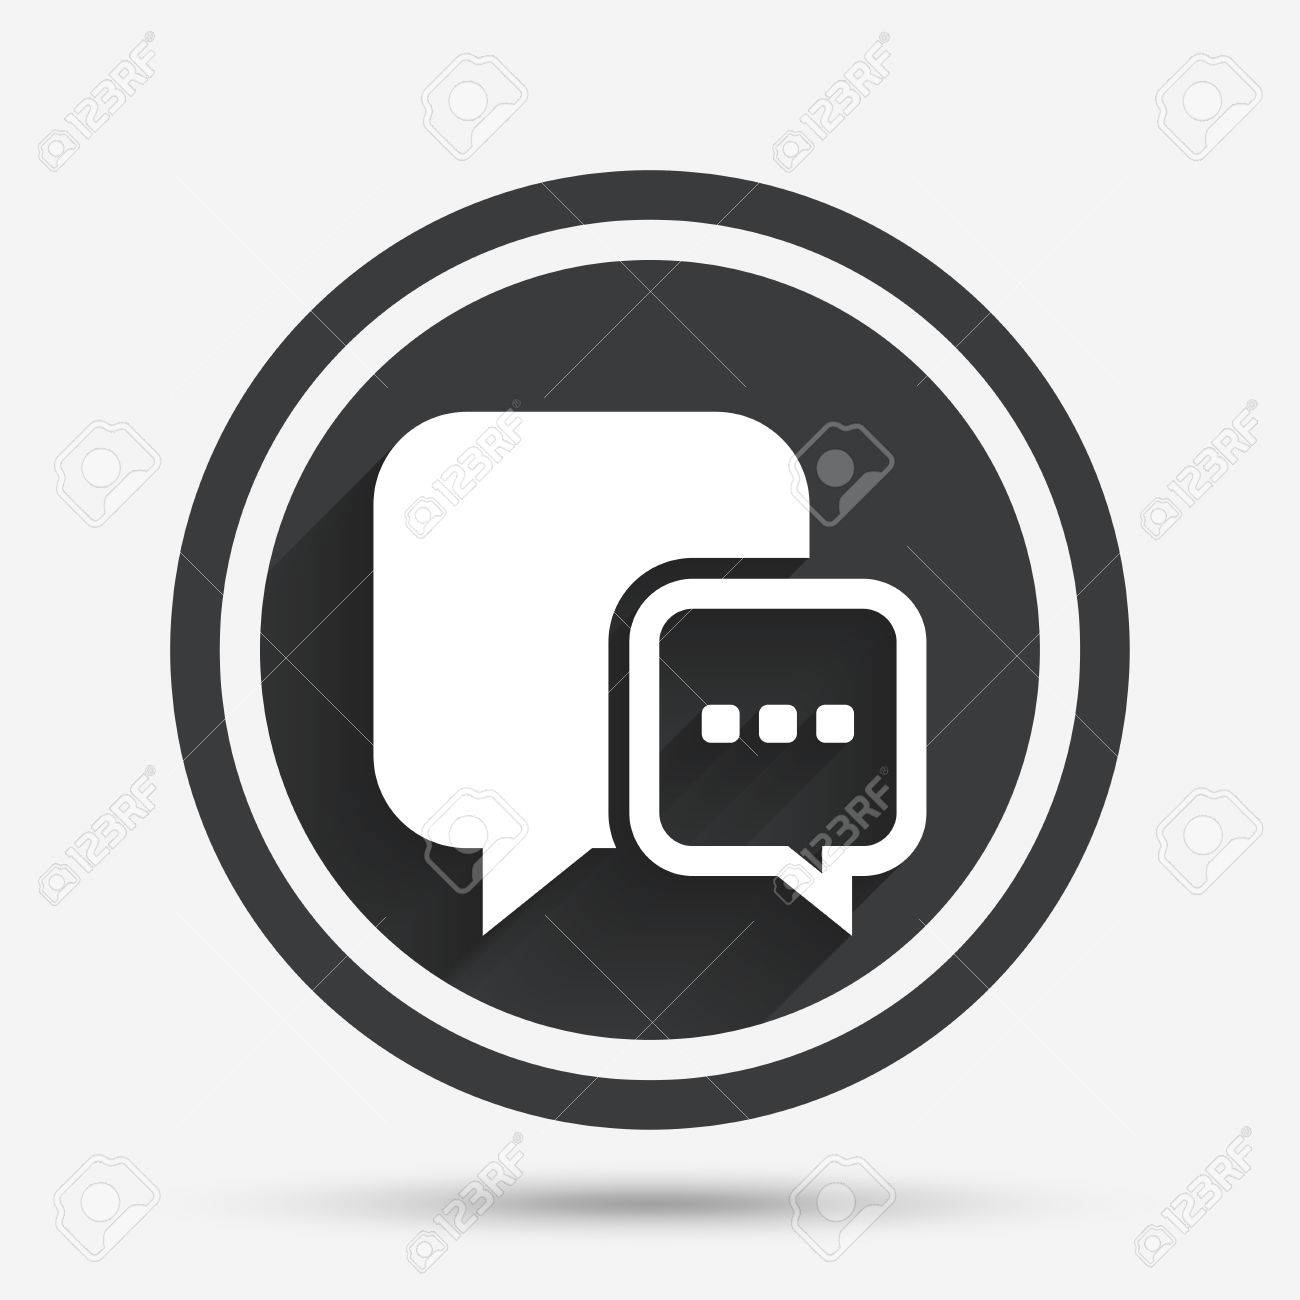 Chat sign icon speech bubble with three dots symbol speech bubble with three dots symbol communication chat bubble circle biocorpaavc